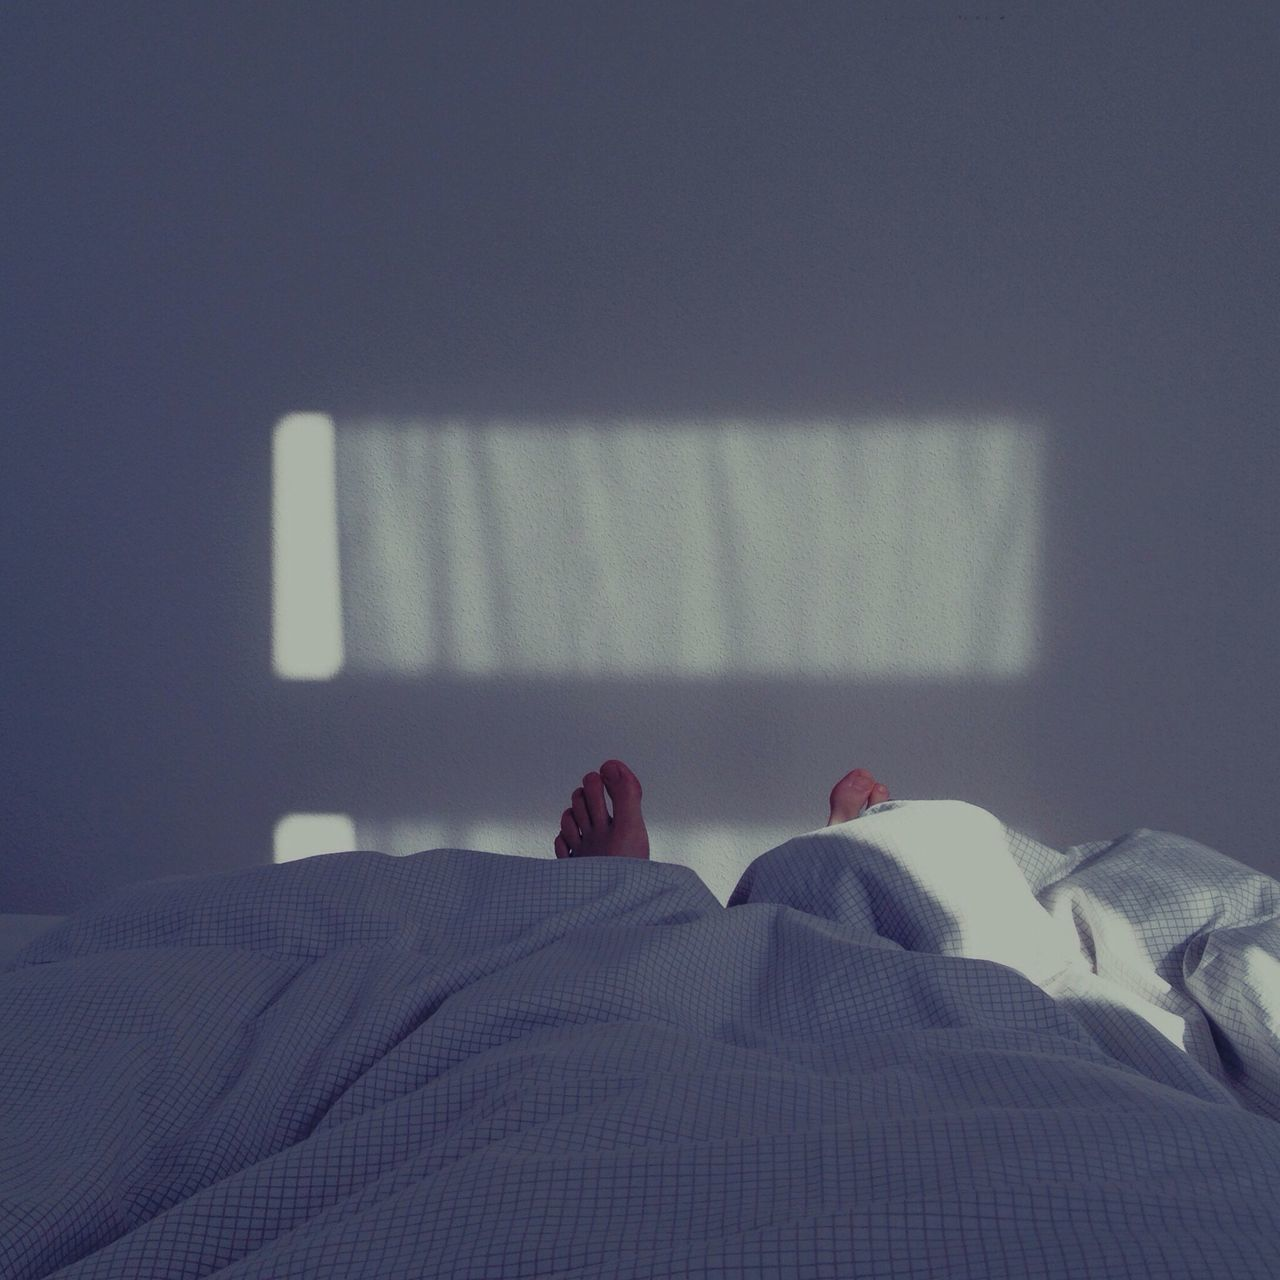 Low section of person lying in bed